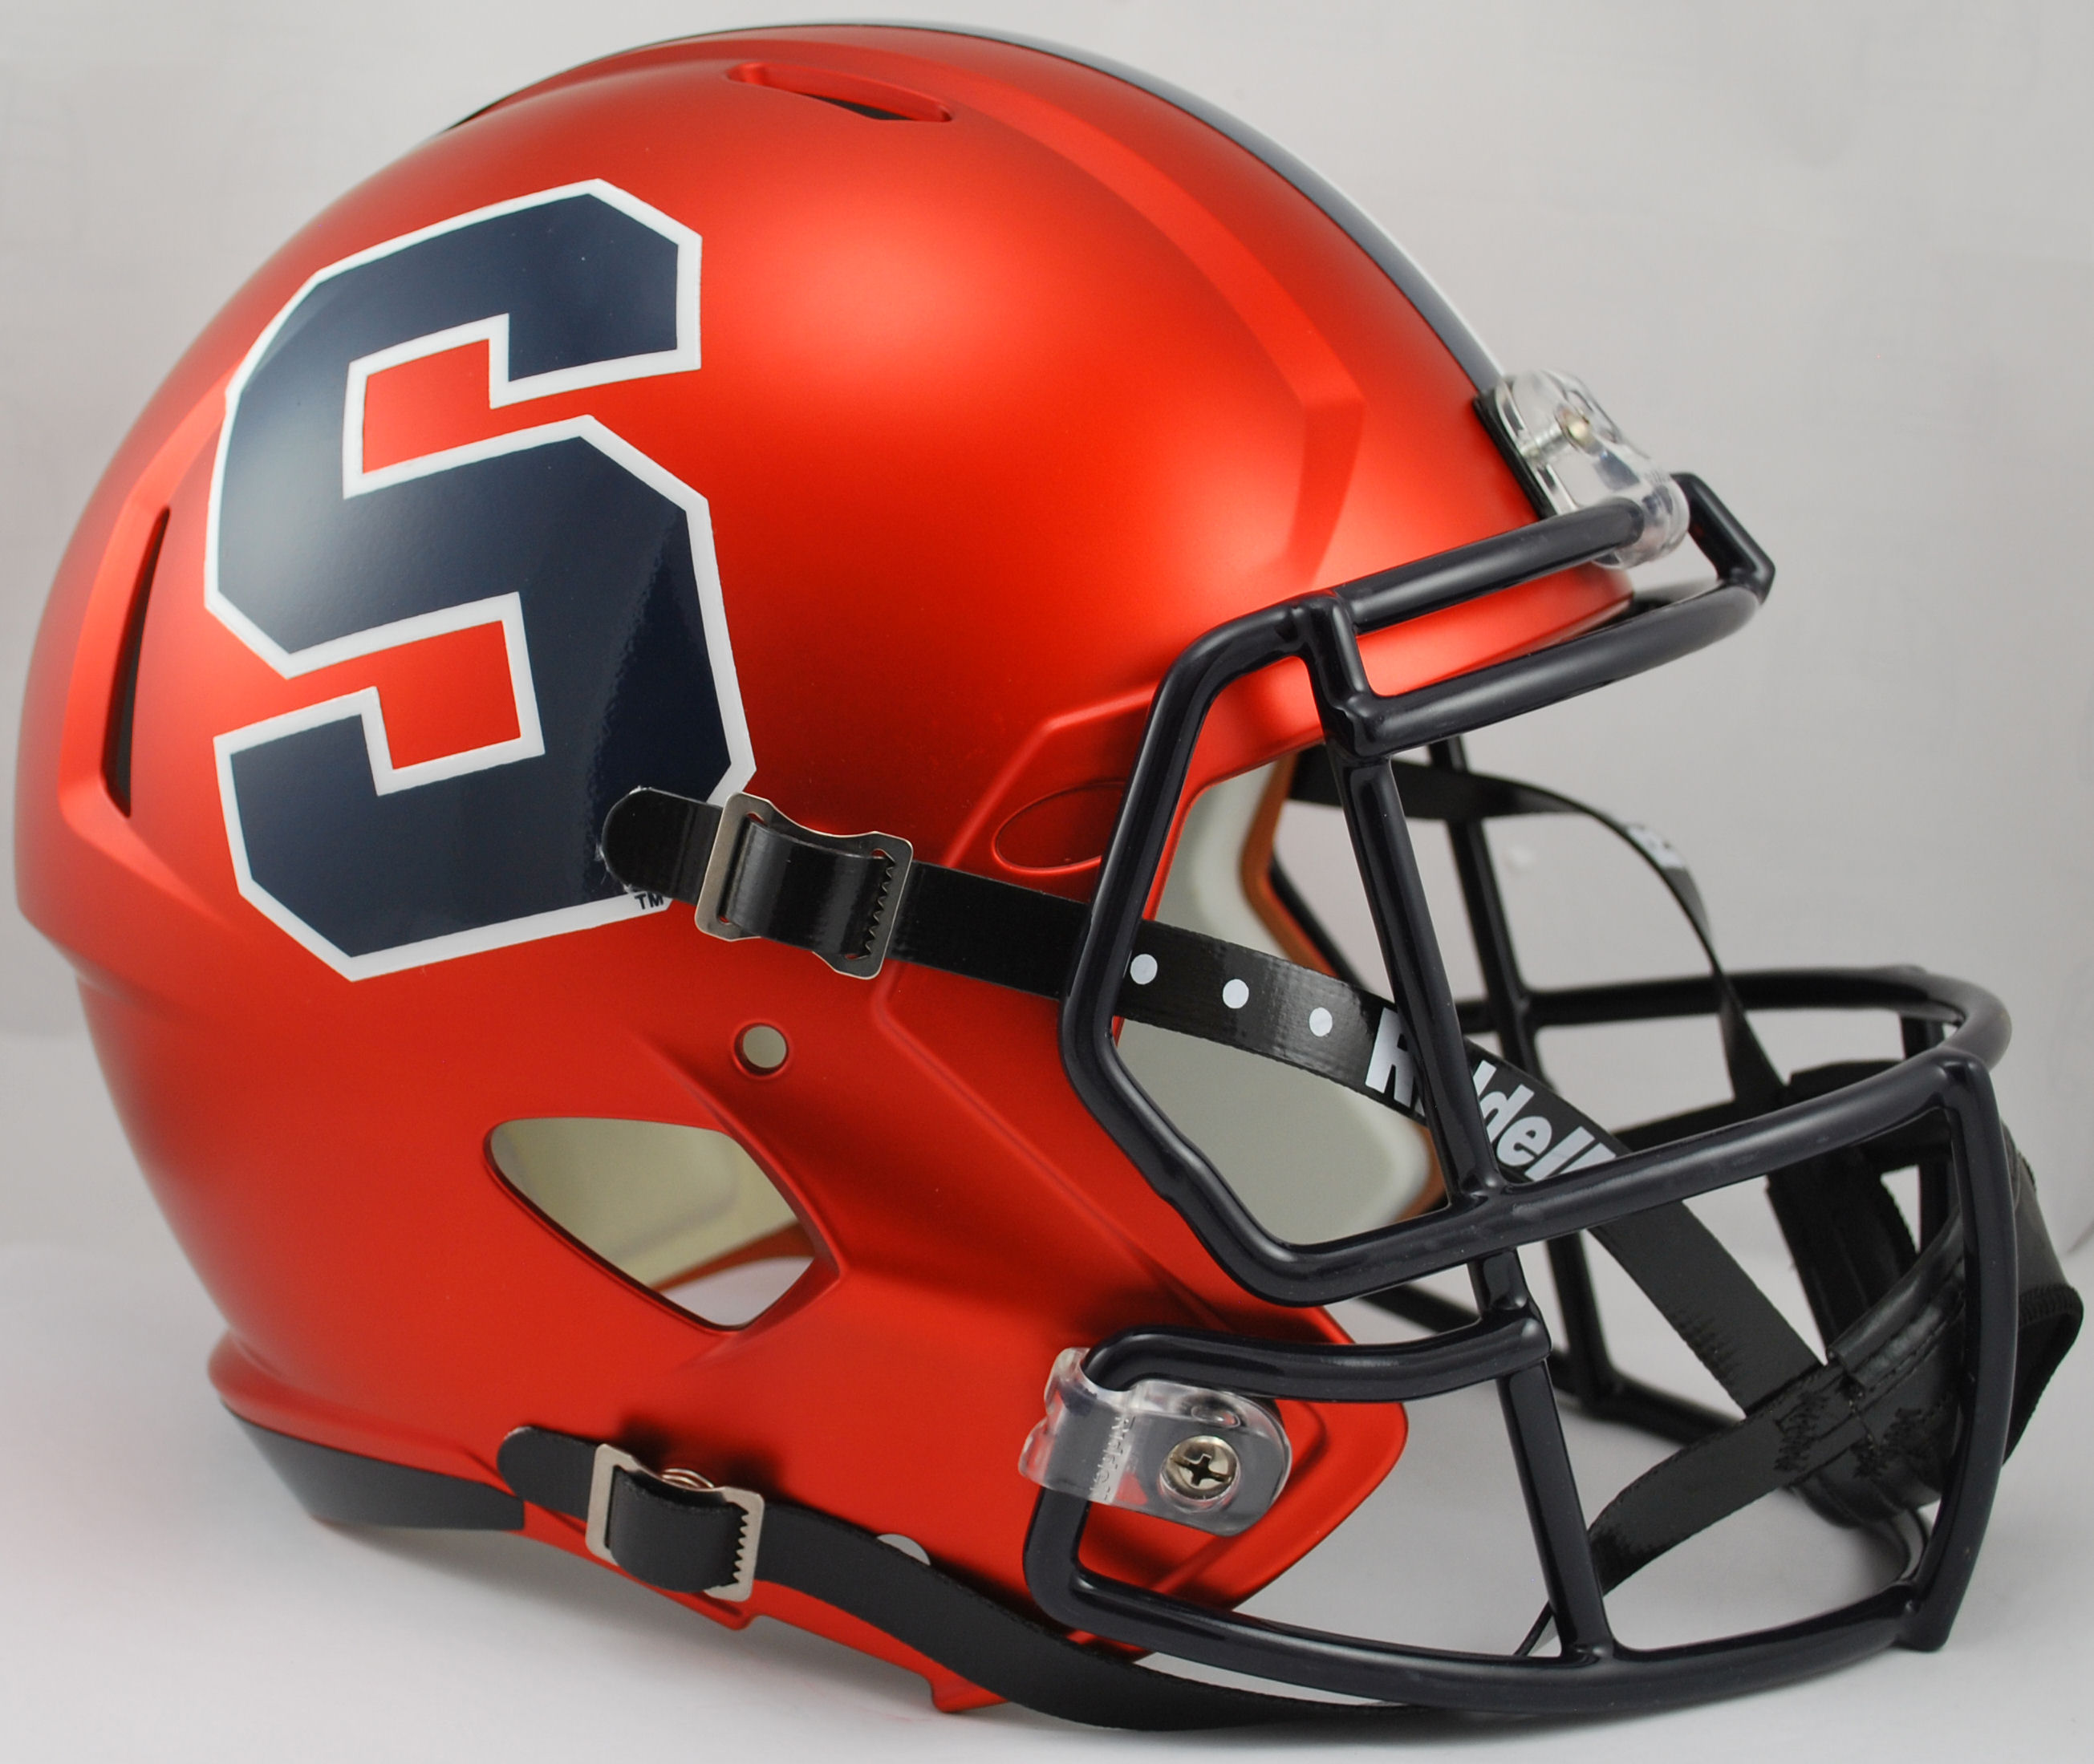 Syracuse Orangemen Speed Replica Football Helmet